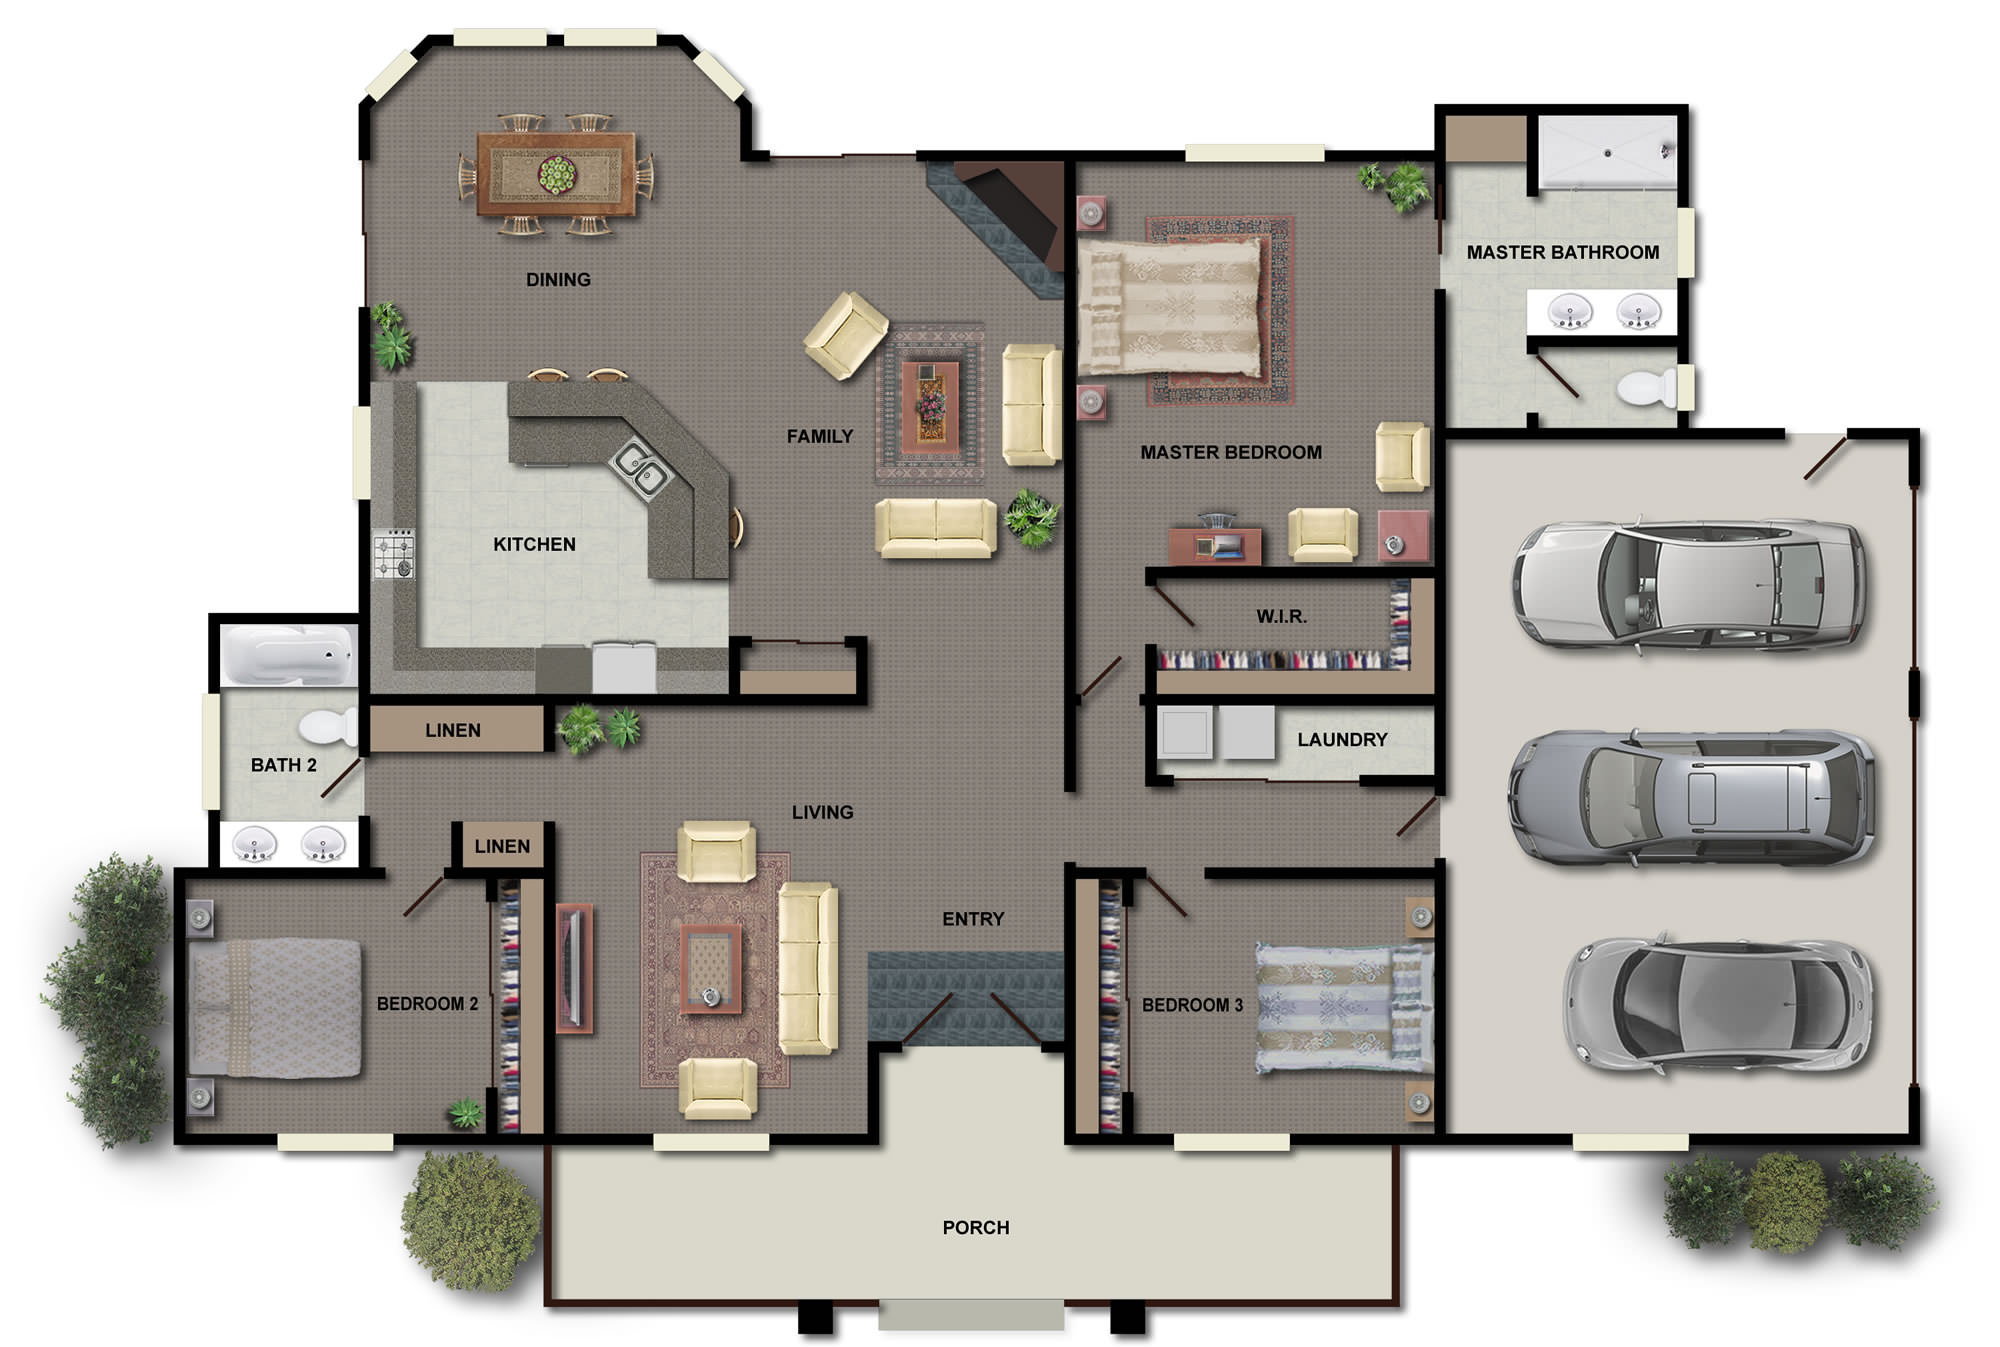 Morning Star floorplan 3